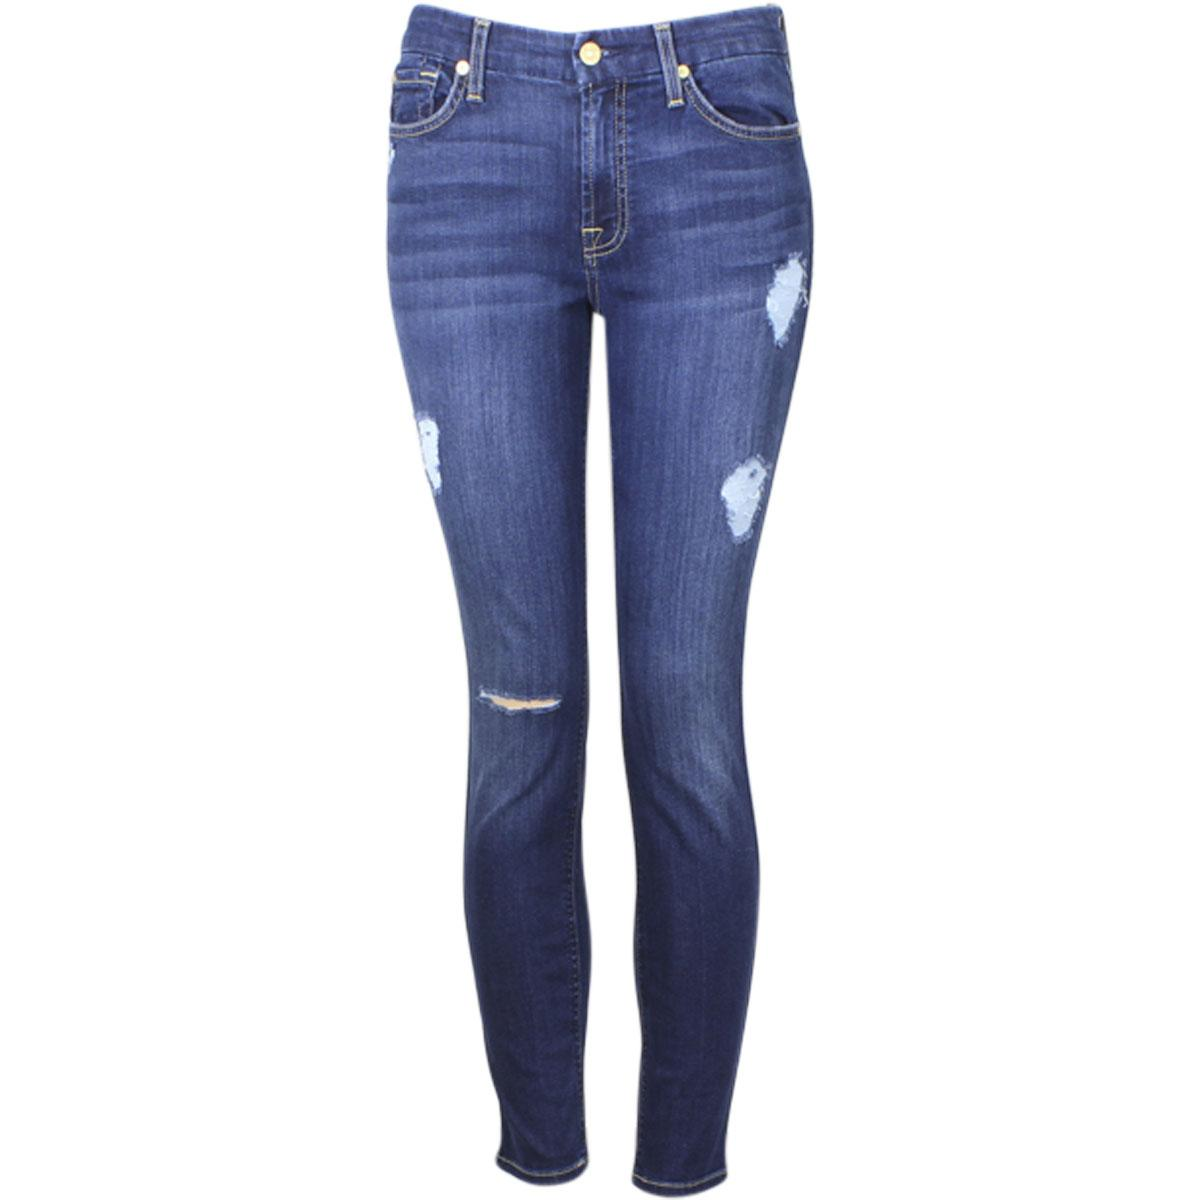 Image of 7 For All Mankind Women's Ankle Skinny With Destroy (B)Air Denim Cropped Jeans - Duchess - 27 (3/4)